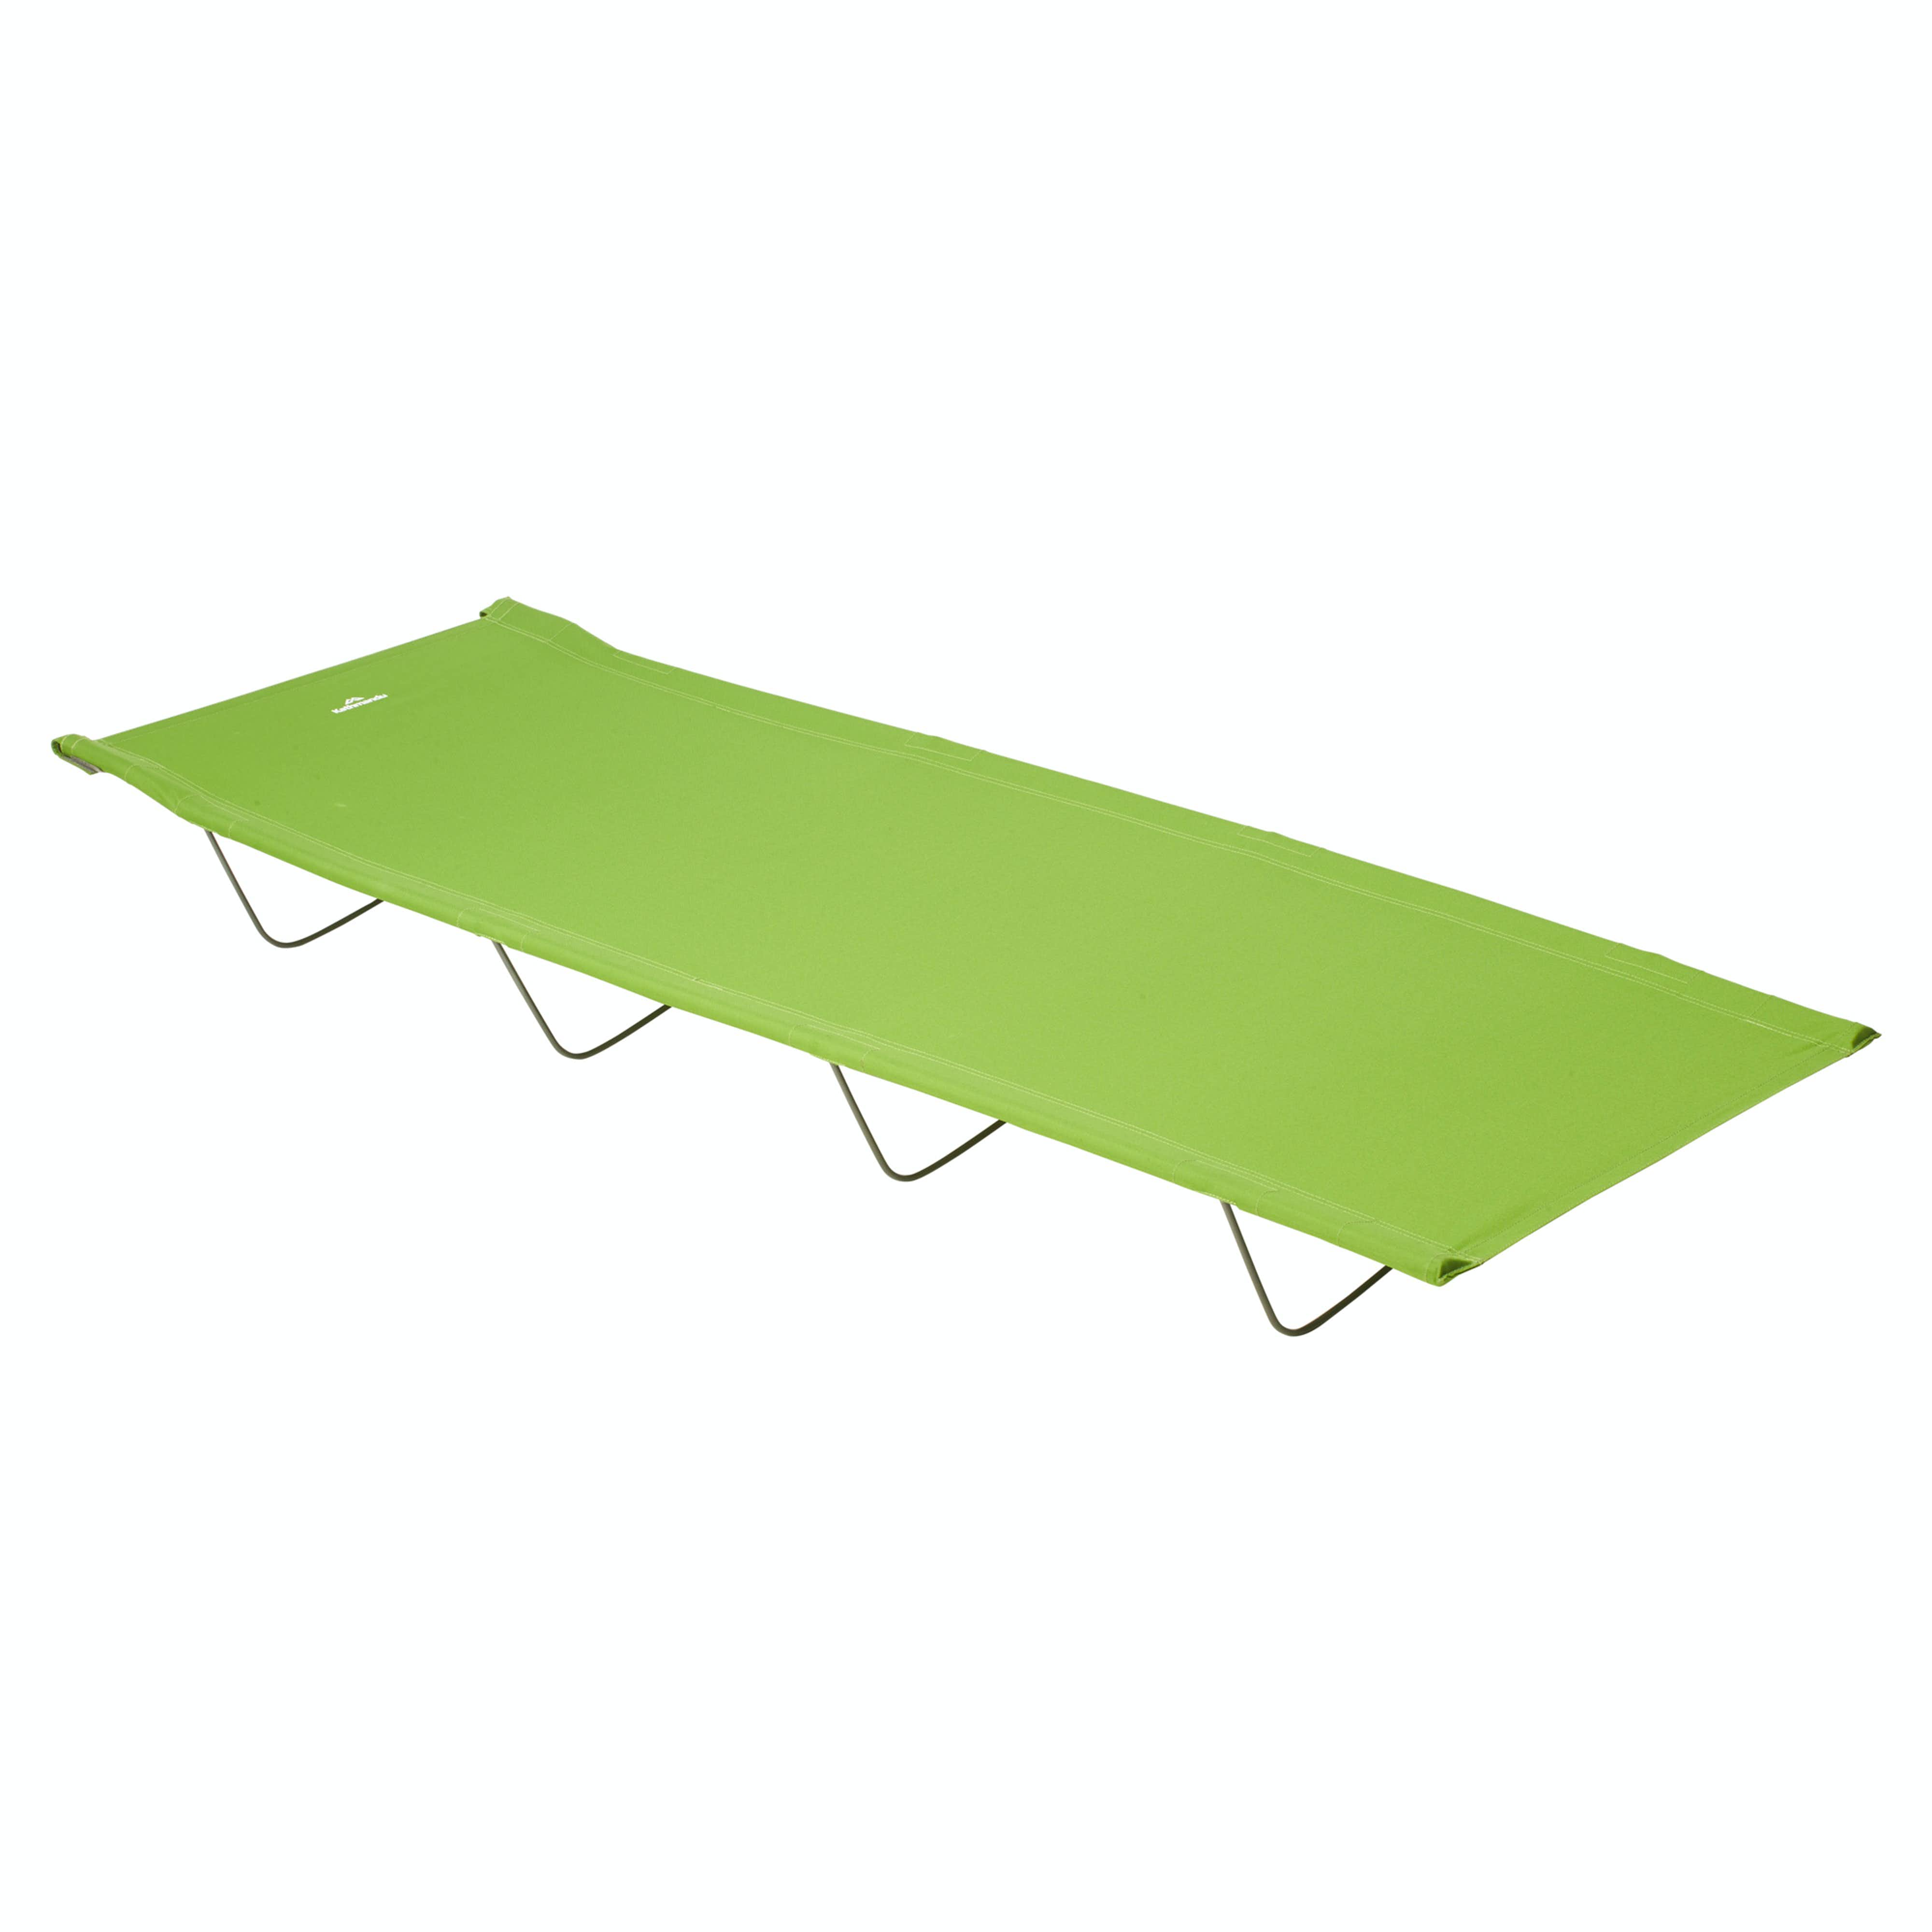 Camping Beds For Tents >> Camp Bed Stretchers Camping Beds For Tents For Sale In